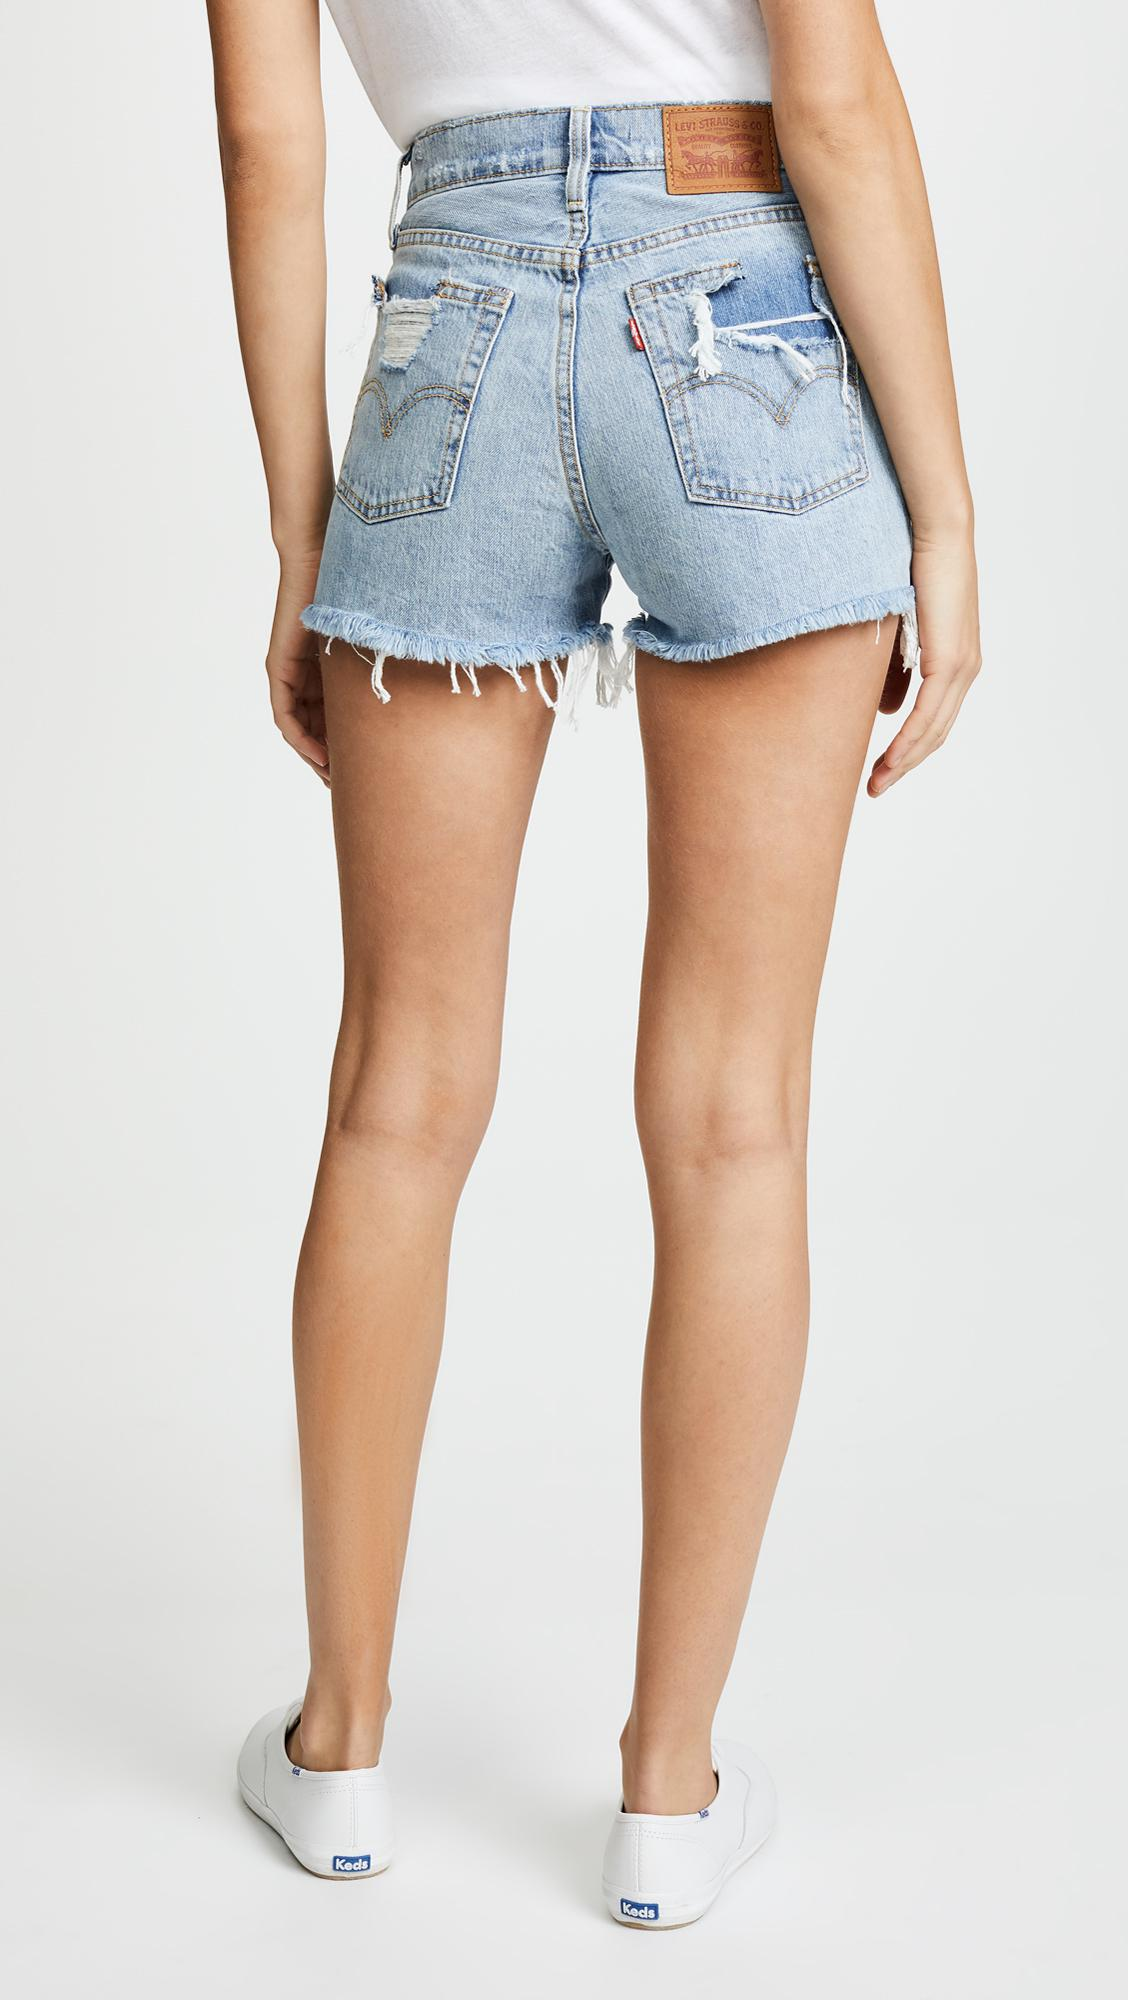 fd83e3d8 Levi's Wedgie Shorts in Blue - Lyst